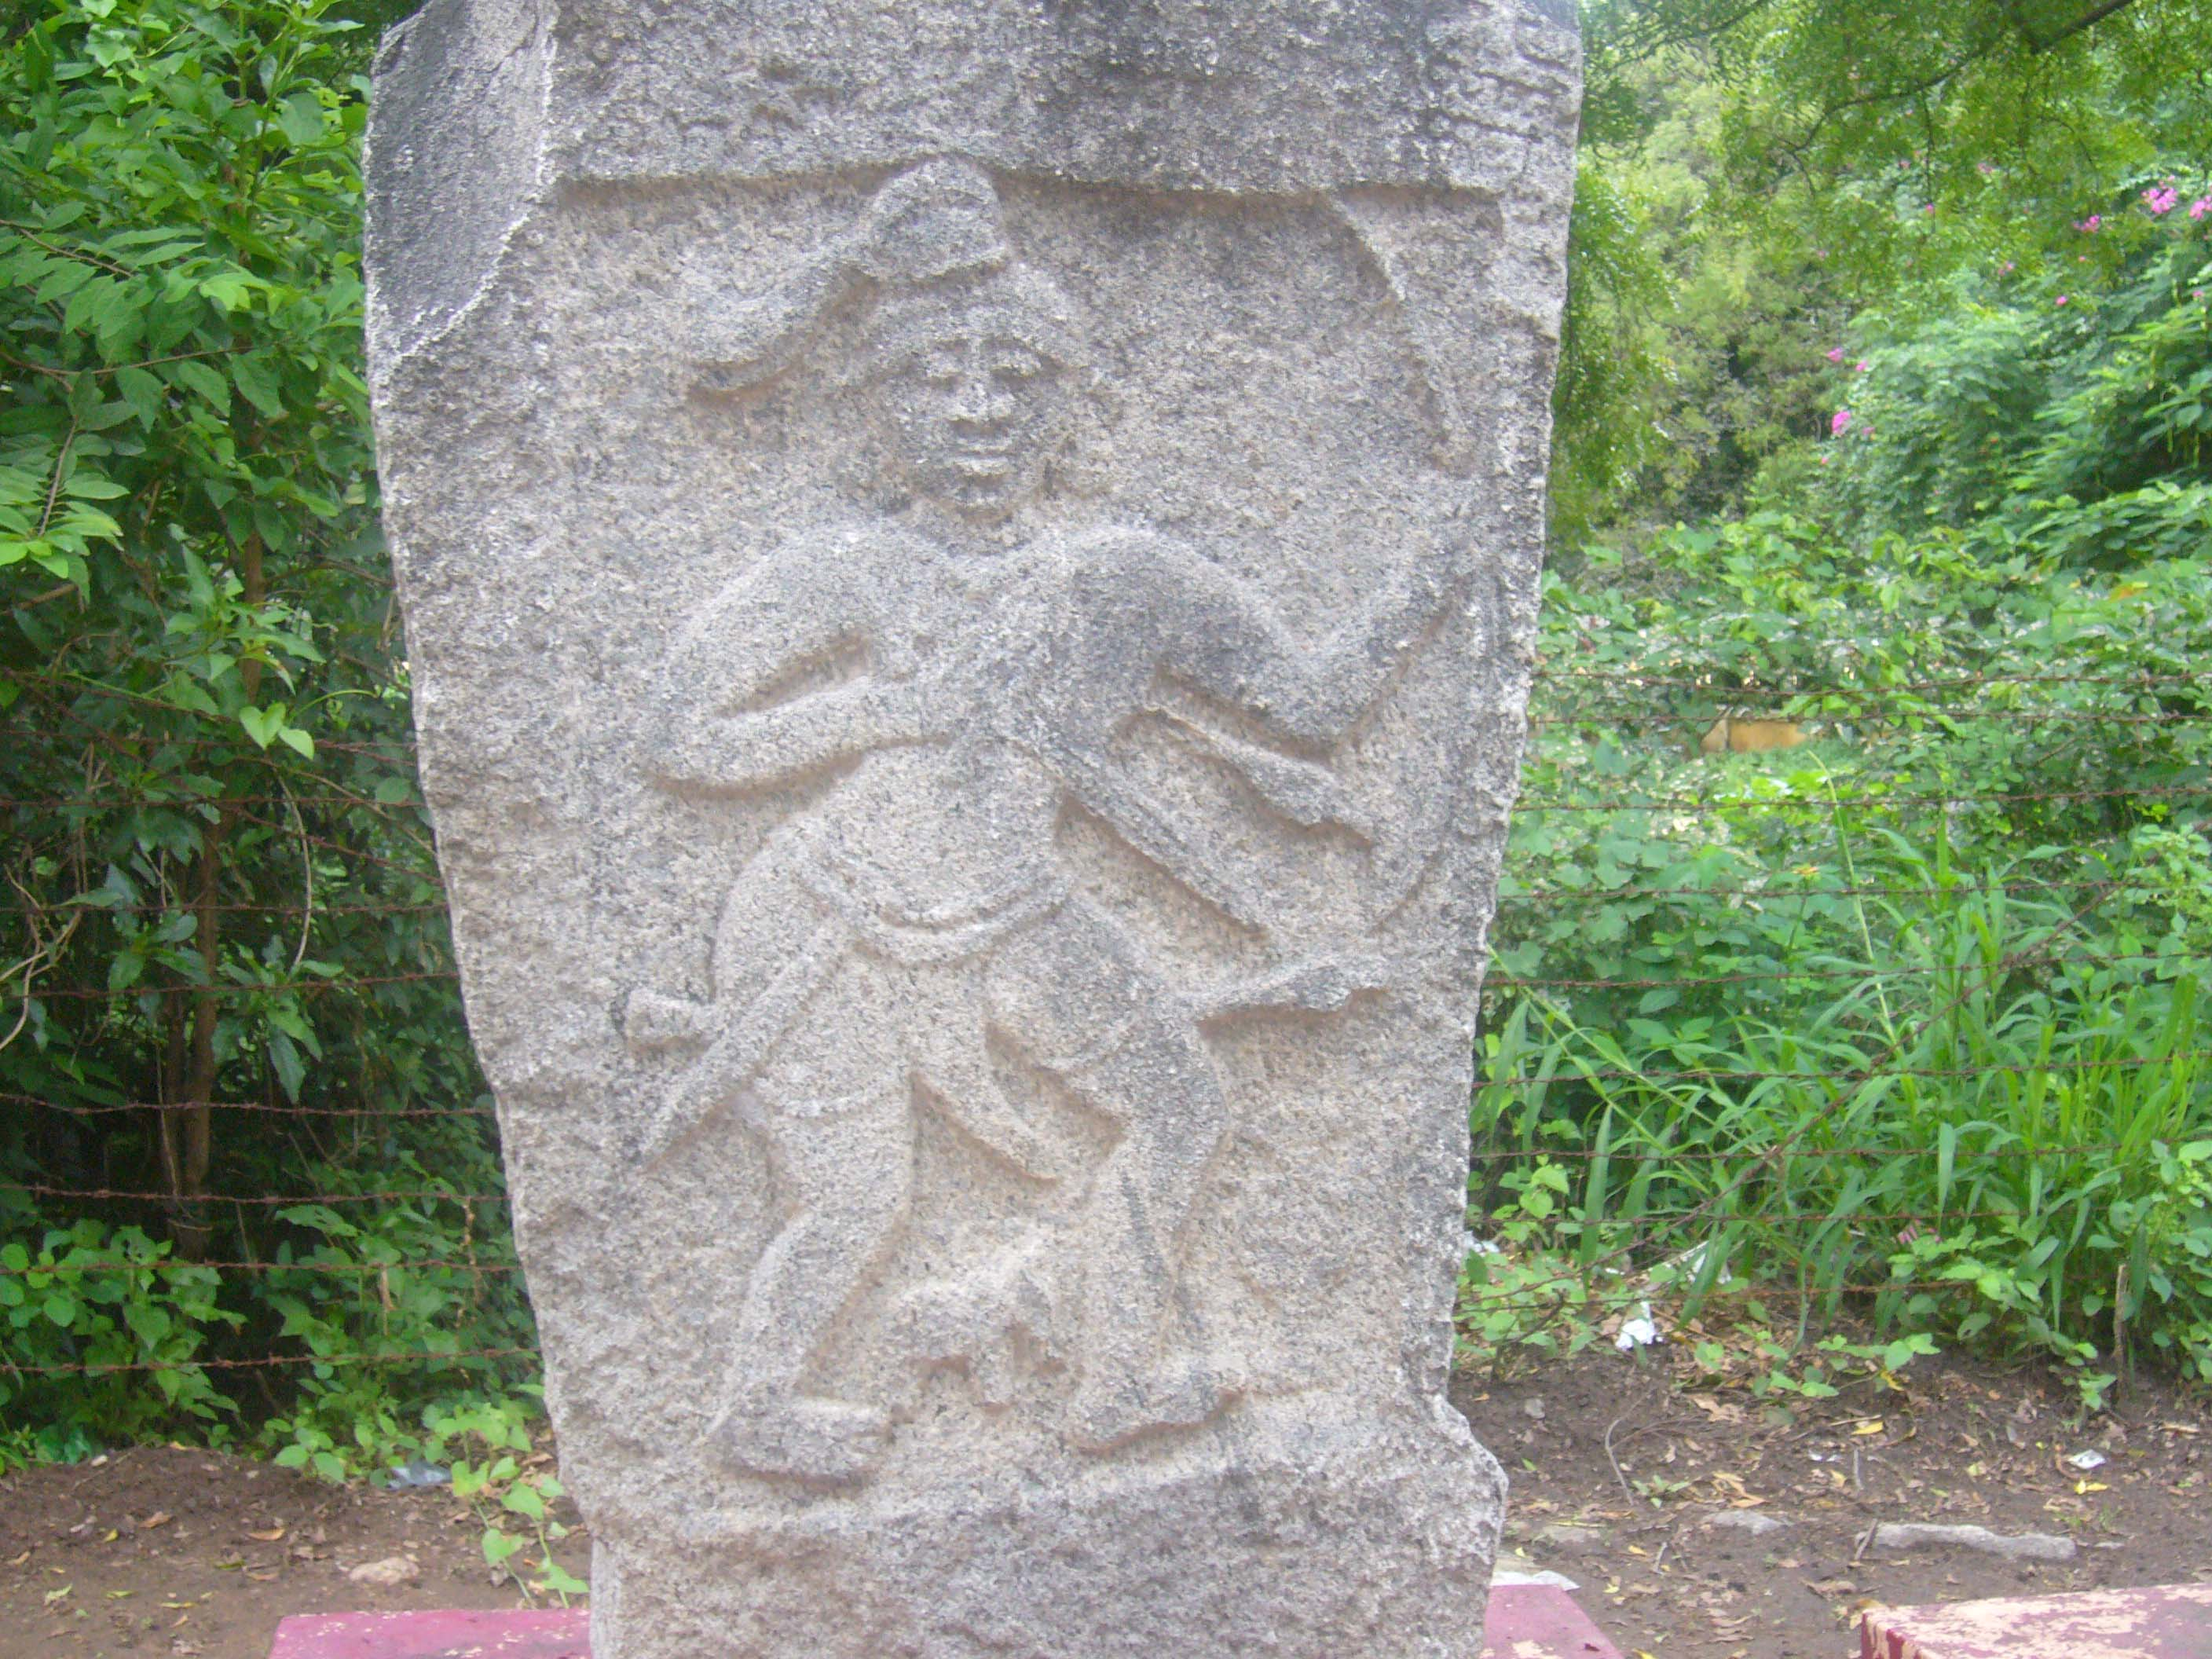 http://upload.wikimedia.org/wikipedia/commons/e/e4/Nadukal.jpg